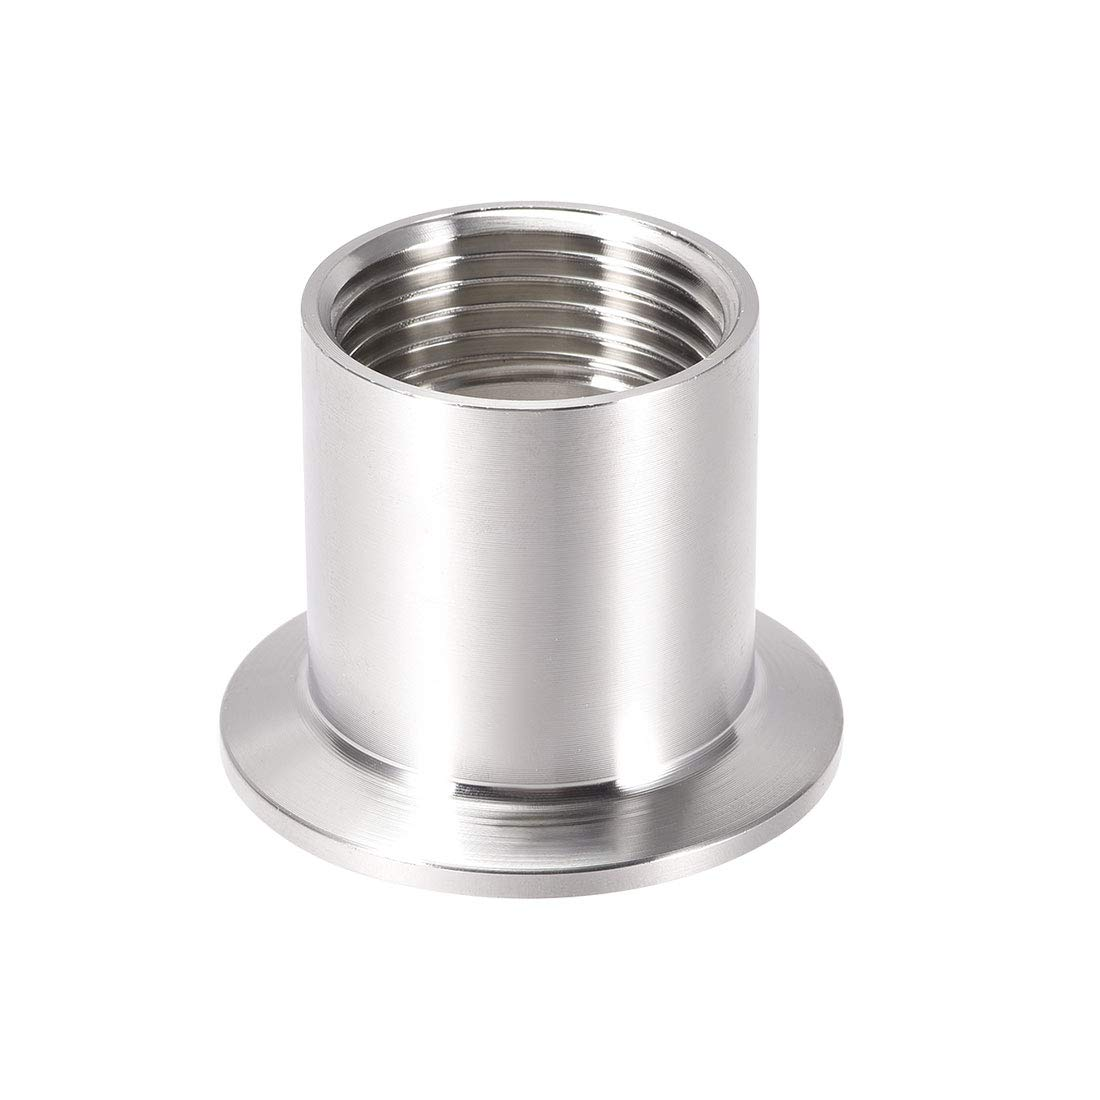 uxcell G1//4 Female Threaded Pipe Fitting to Clamp OD 50.5mm Ferrule